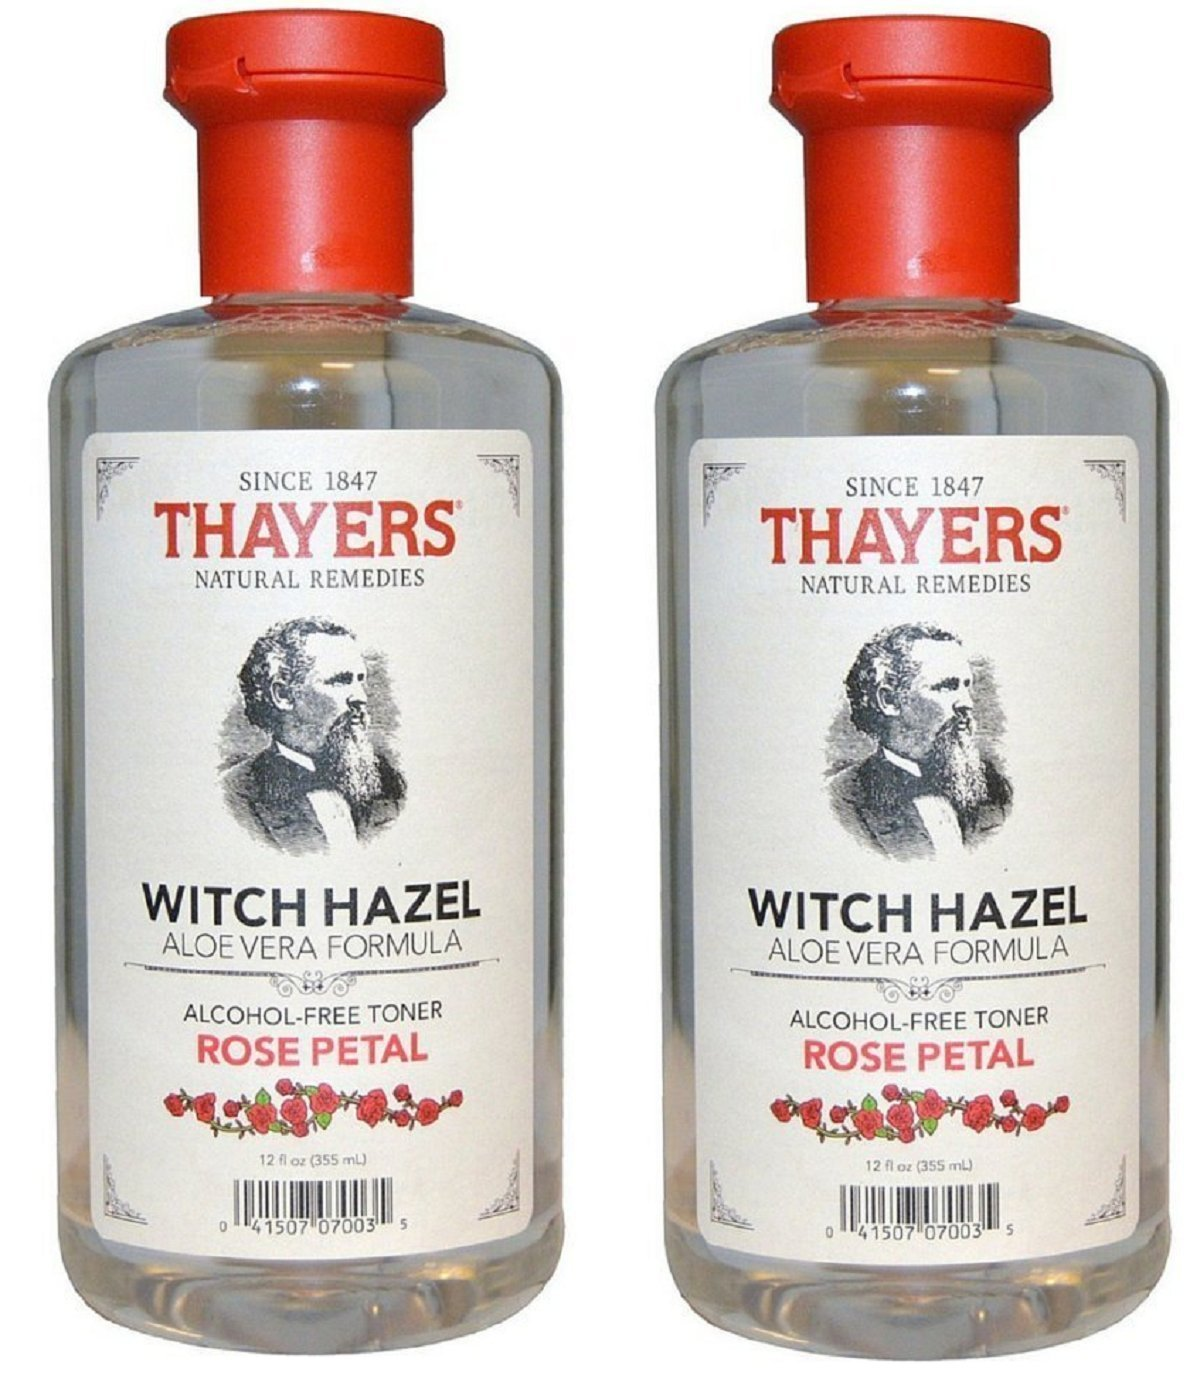 Thayers Alcohol-Free Rose Petal Witch Hazel Toner - 12oz (2 Pack) Thayer' s